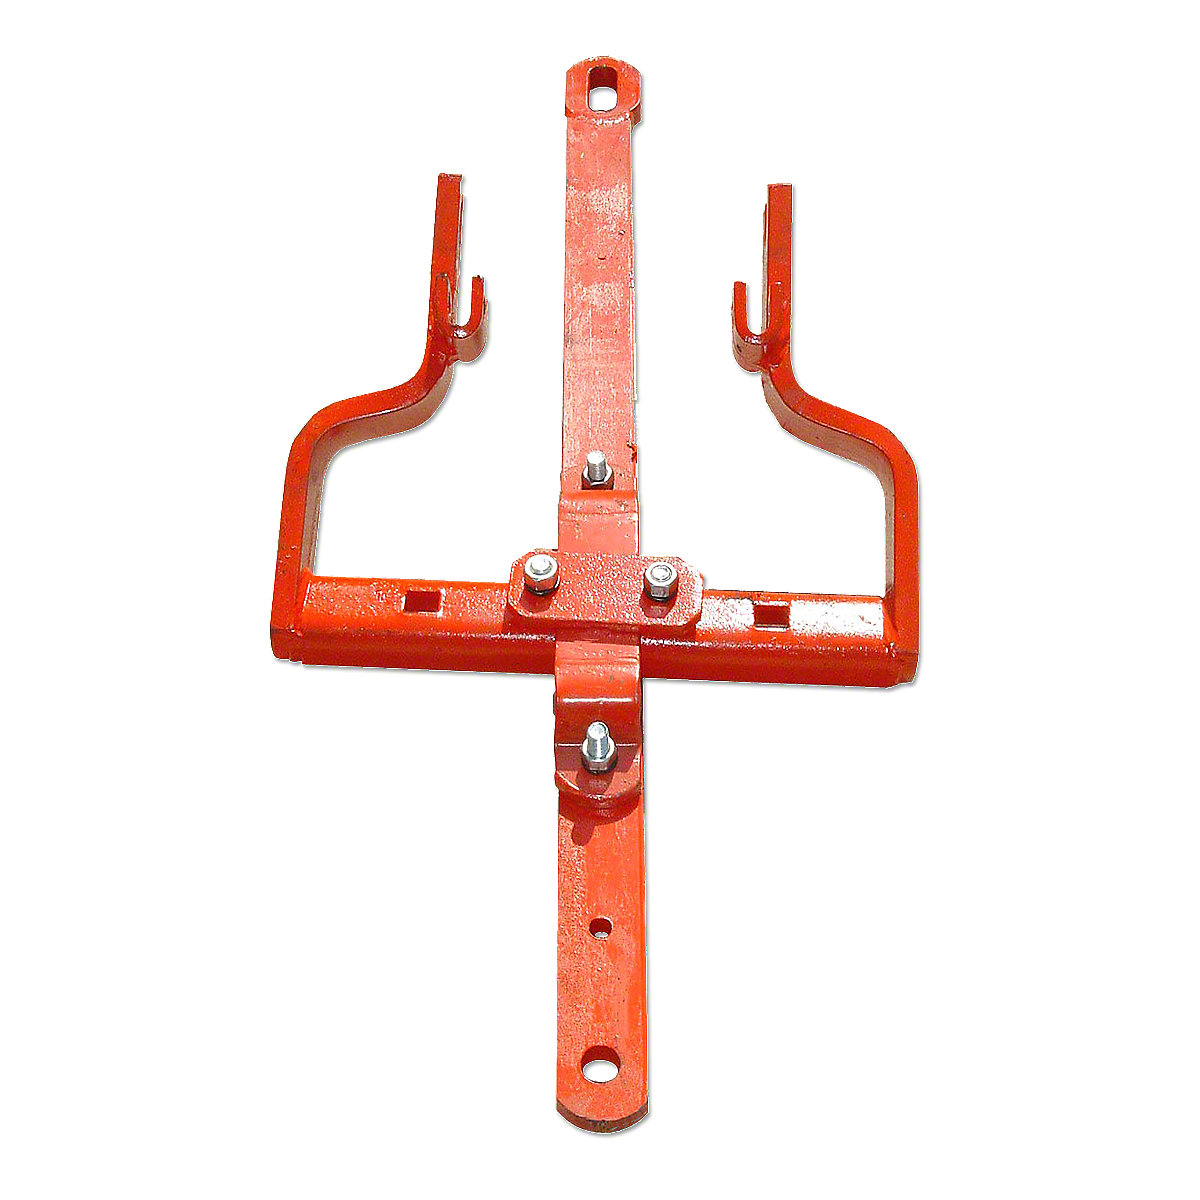 Draw Bar Yoke Assembly For Allis Chalmers: D14, D15, D17.